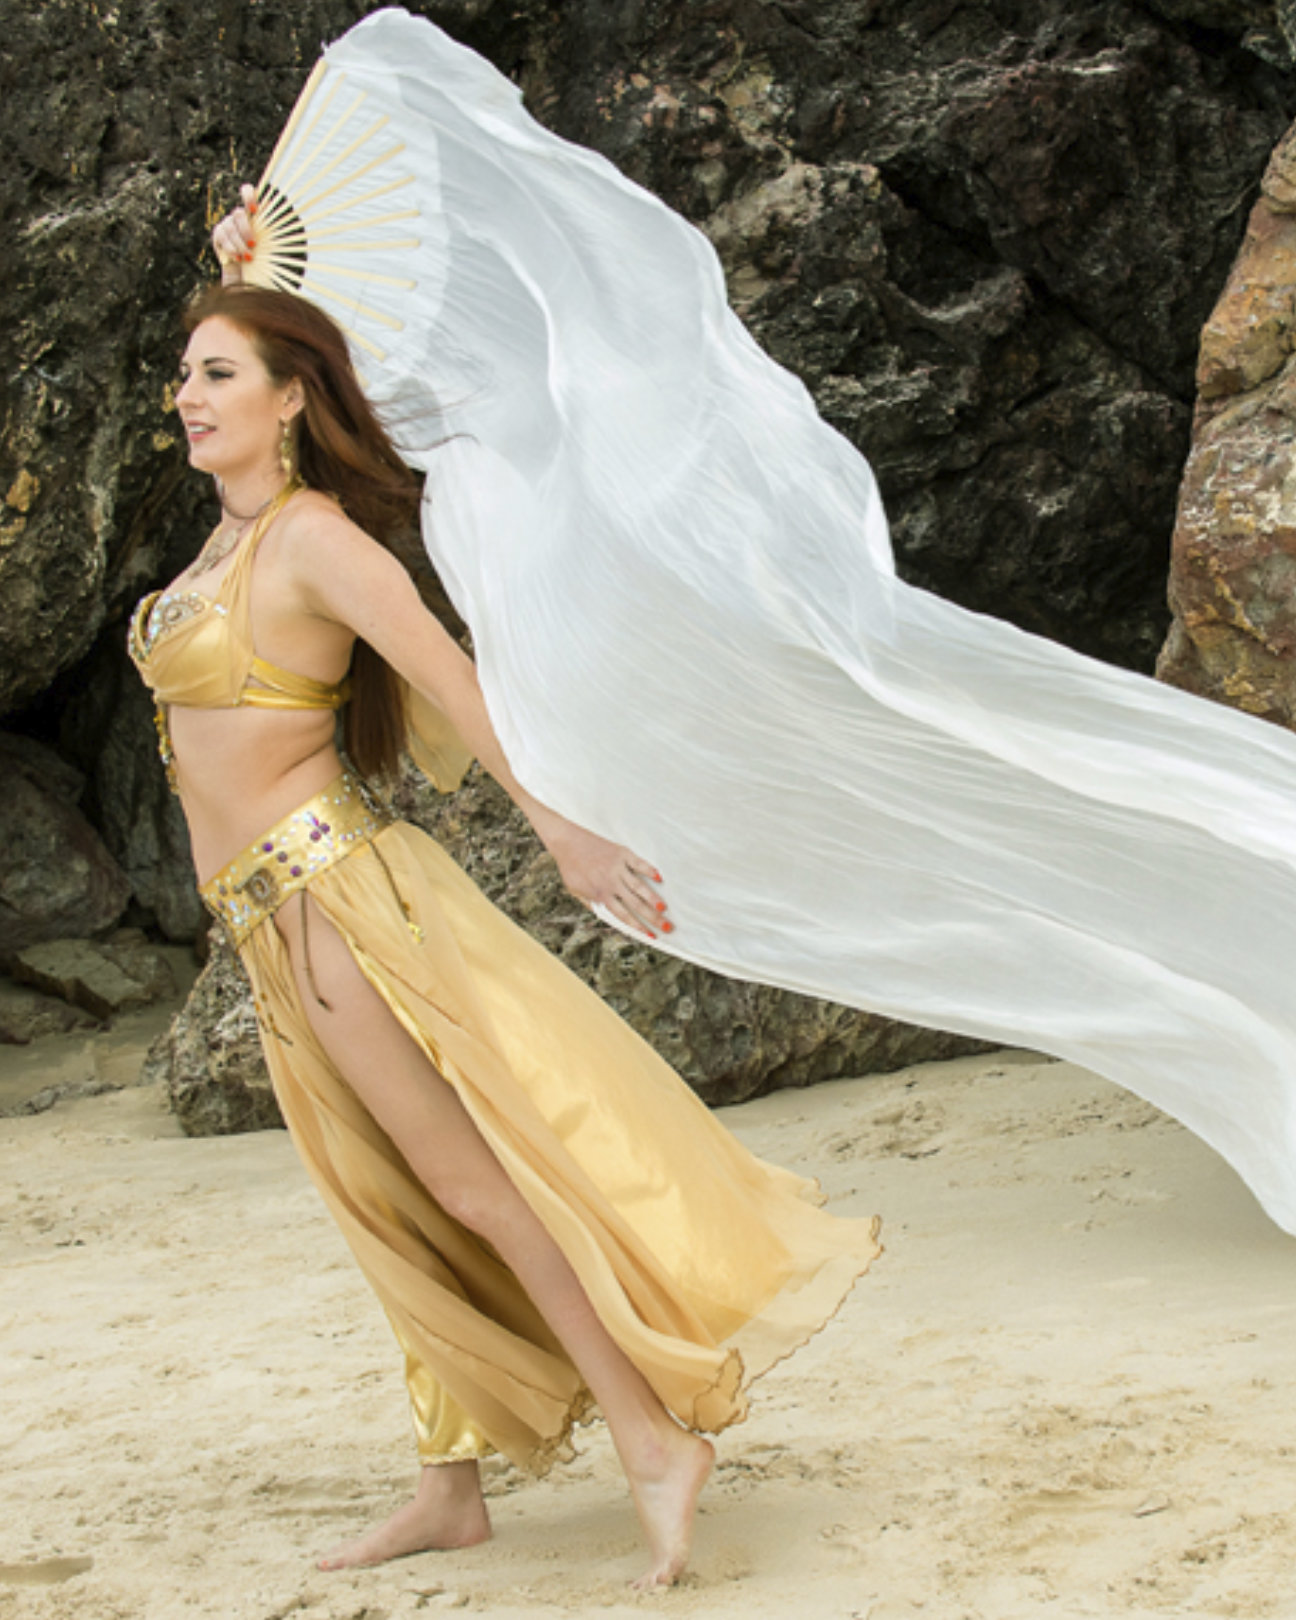 7 Belly Dancing Performers Photos